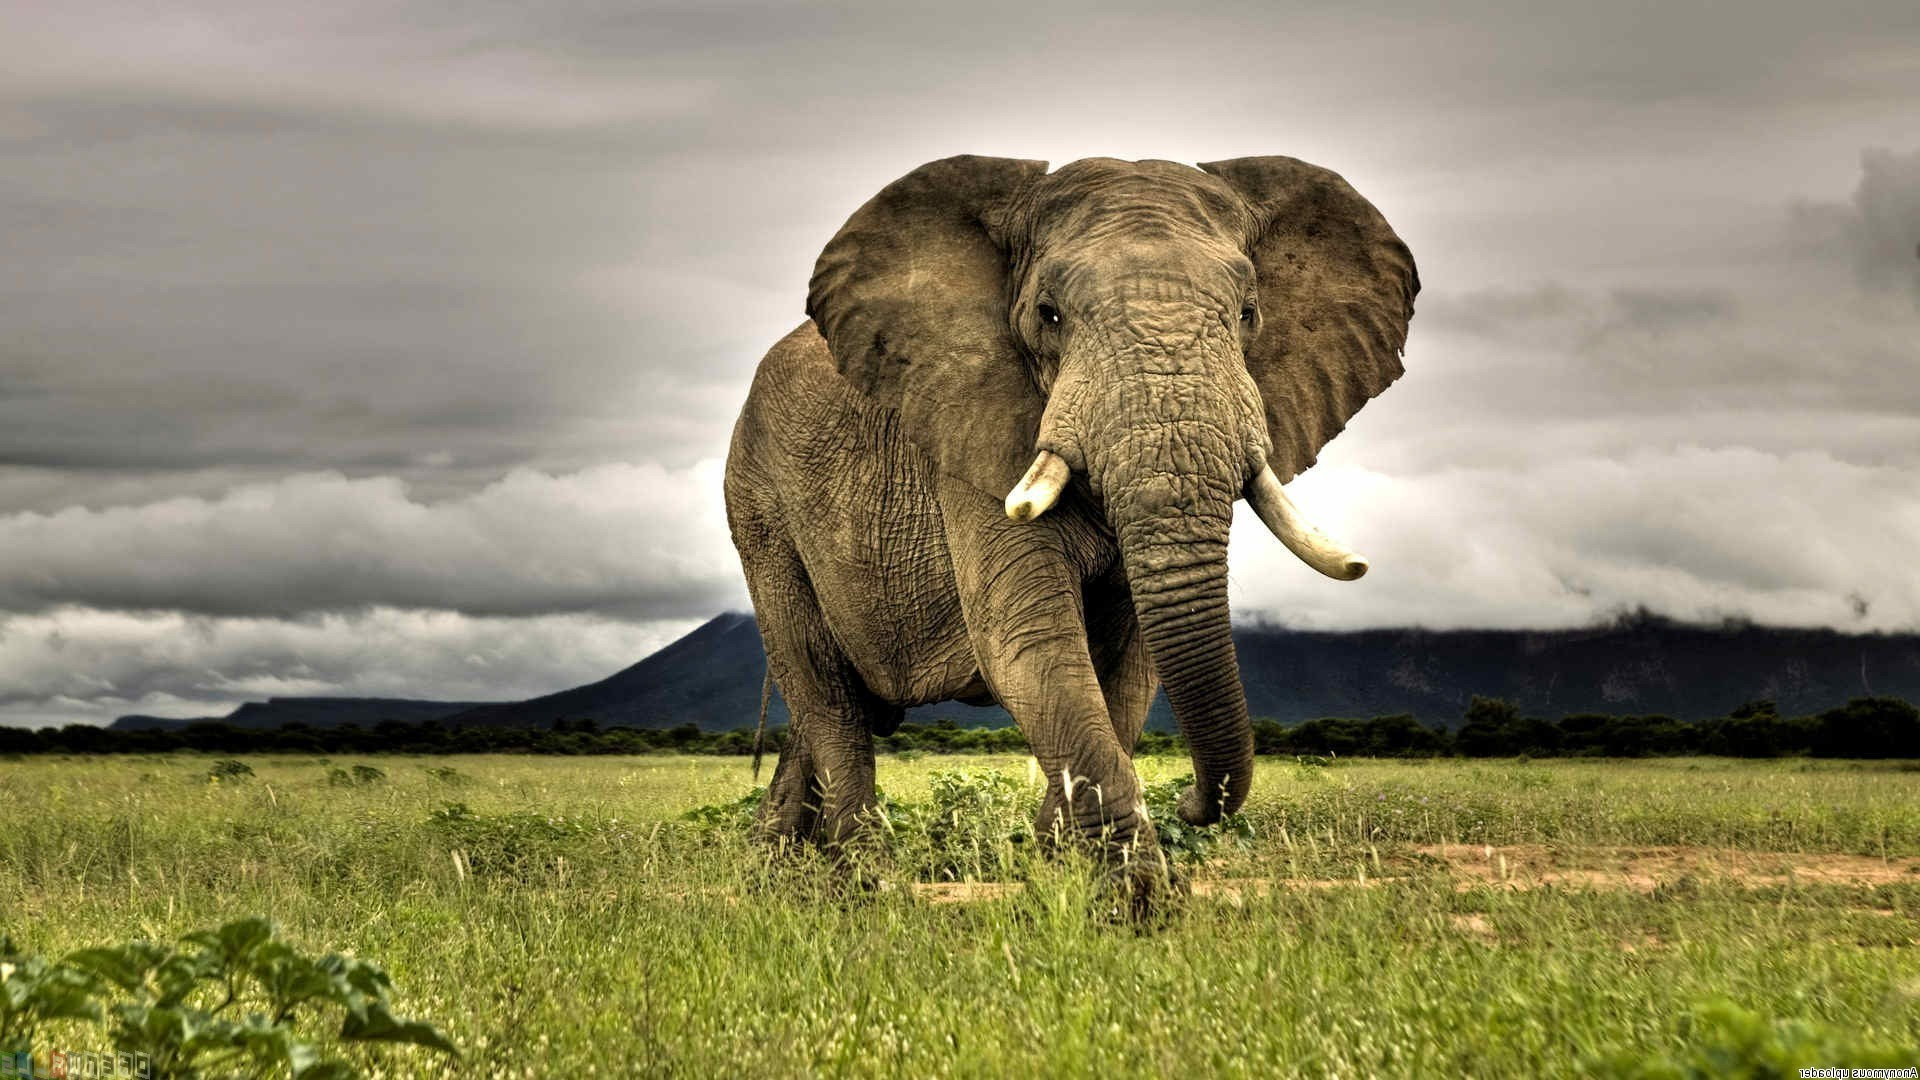 1920x1080 elephants, Animals, African, Nature, Grass, Savannah, Overcast, Wildlife,  Photography Wallpapers HD / Desktop and Mobile Backgrounds